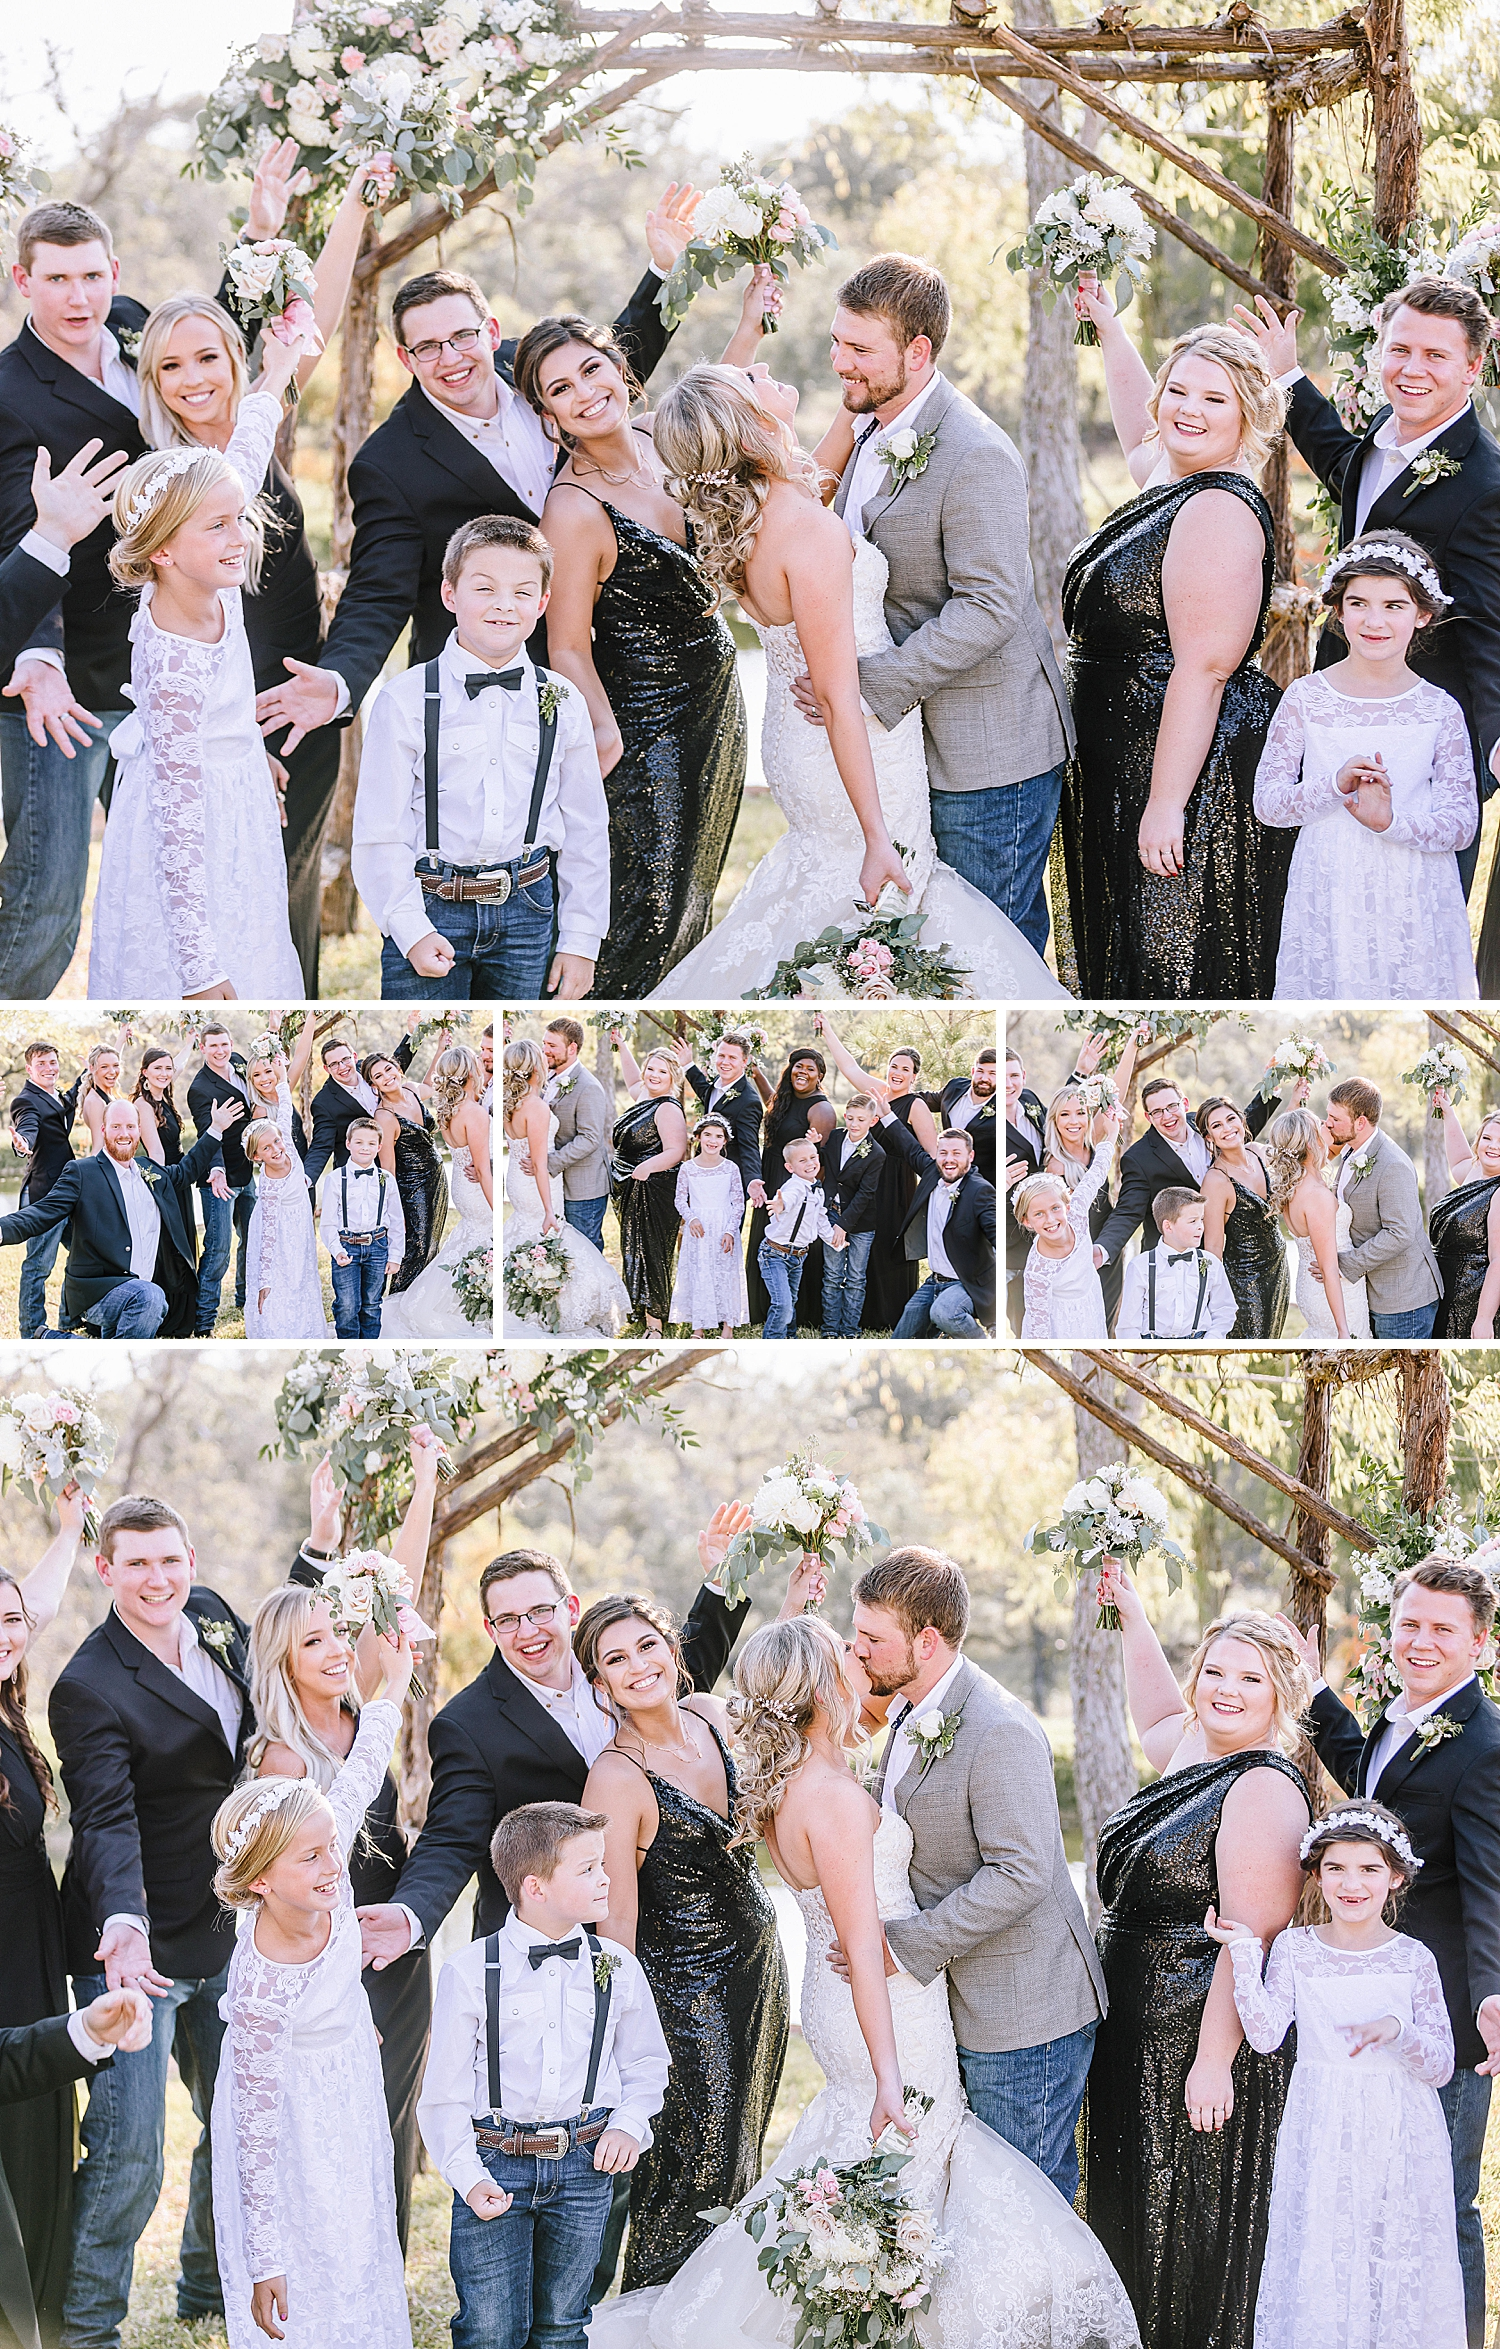 Rackler-Ranch-LaVernia-Texas-Wedding-Carly-Barton-Photography_0058.jpg